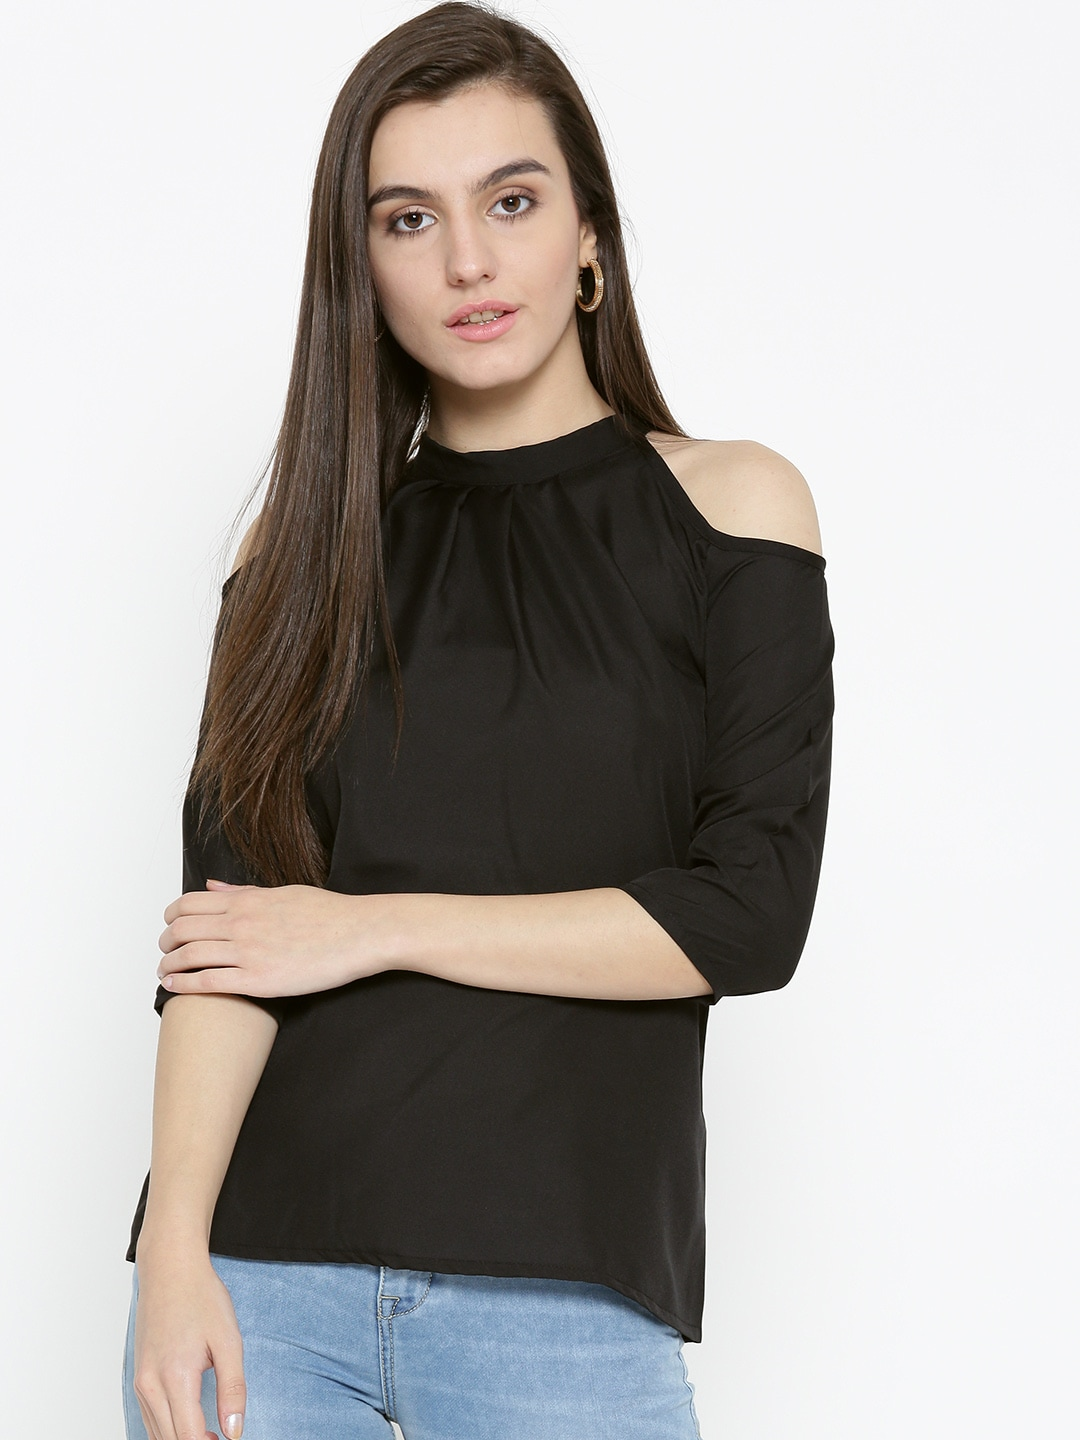 9d0674ab0708 Cold Shoulder Tops - Buy Cold Shoulder Tops for Women Online - Myntra